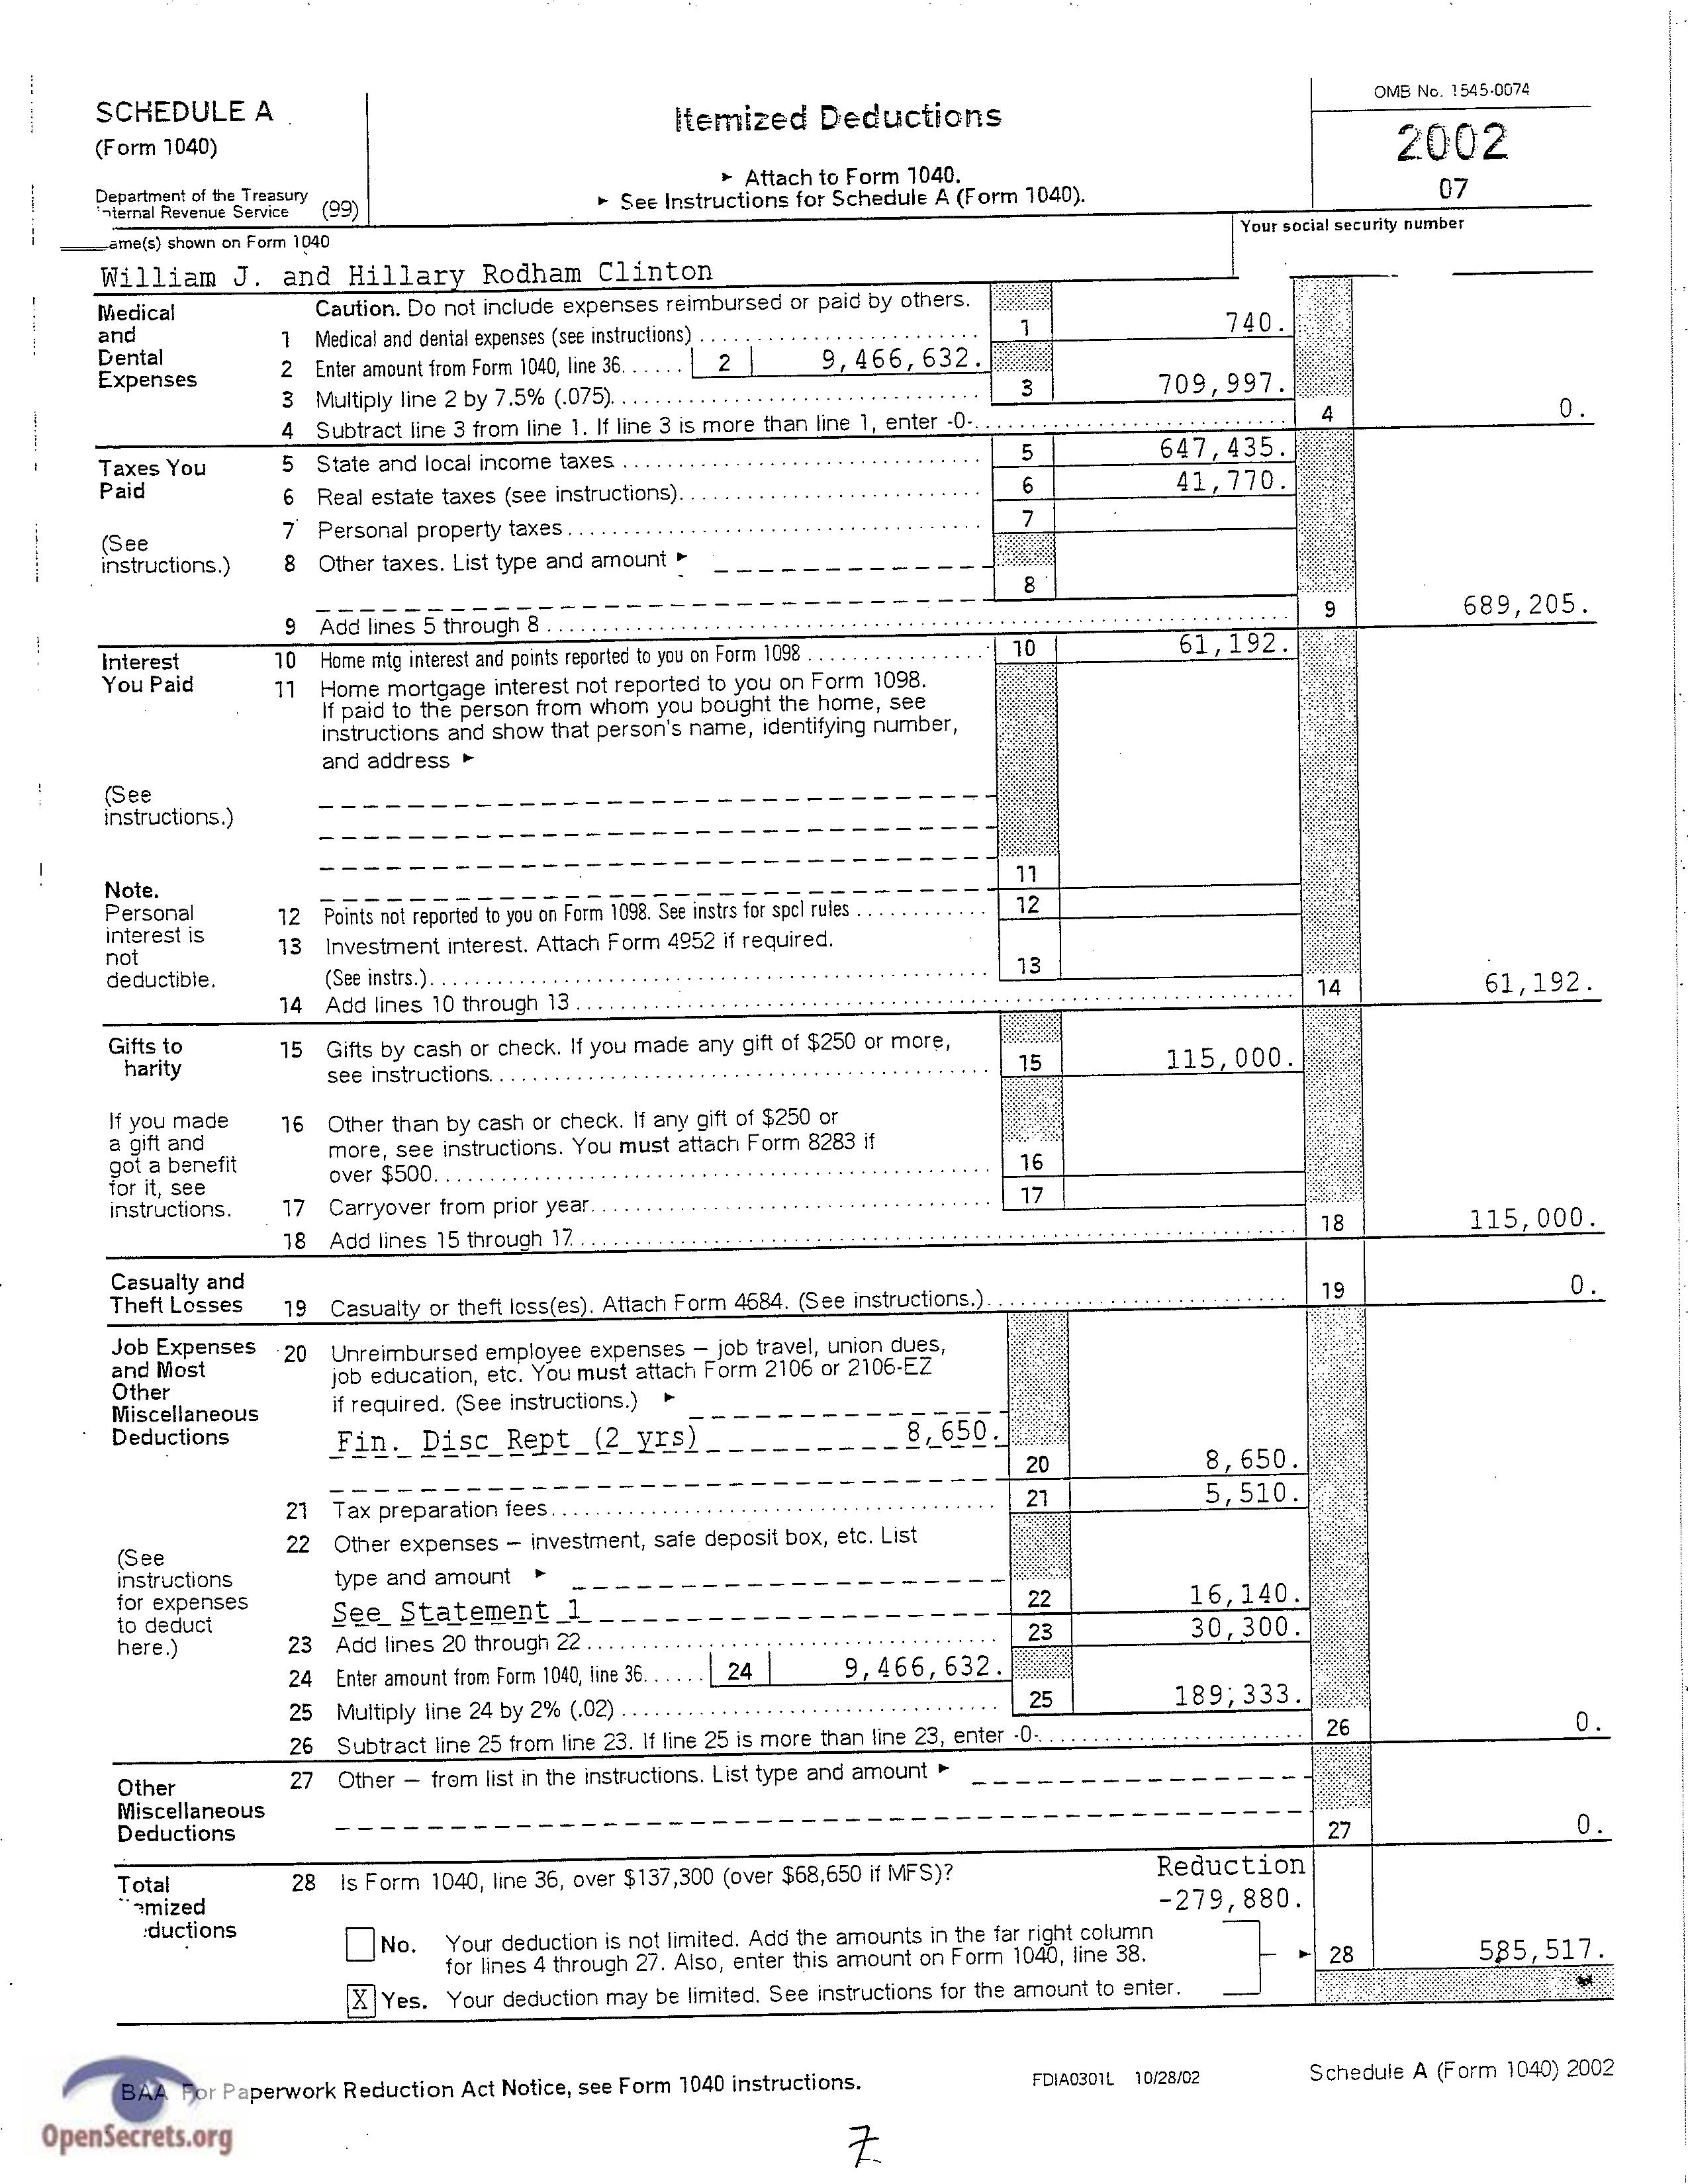 Instructions For Form 4952 Image Collections Form 1040 Instructions